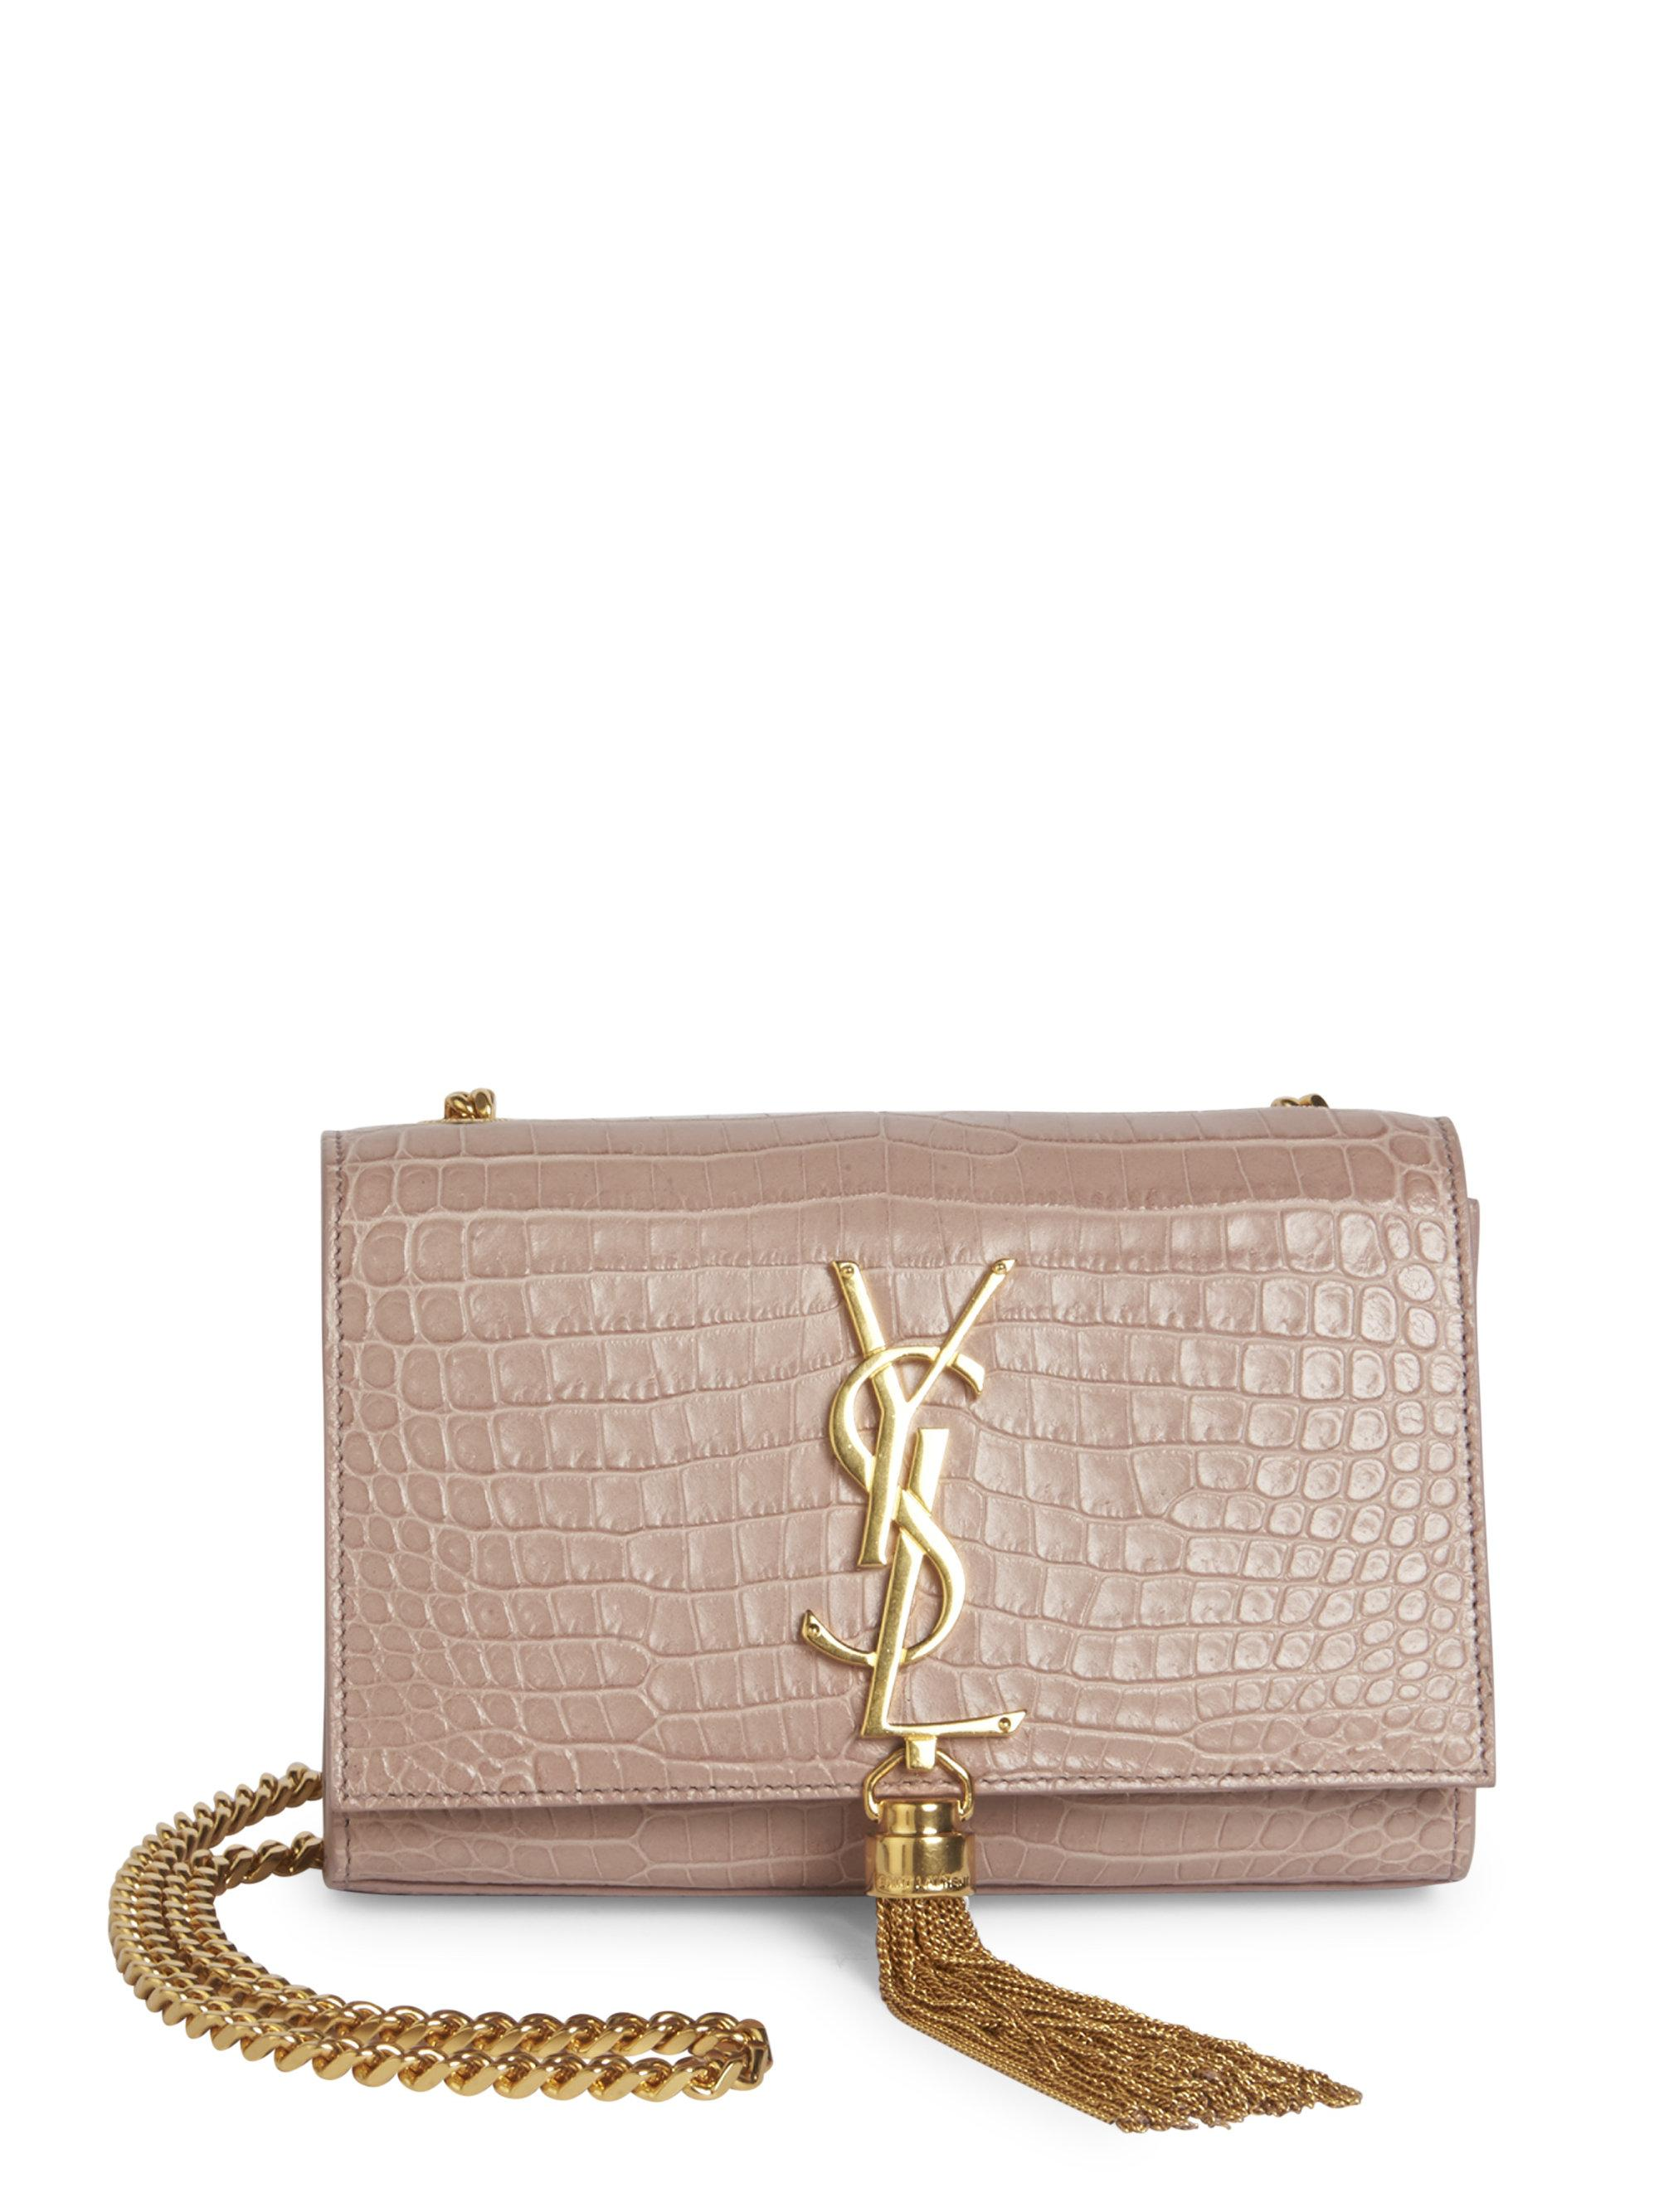 6756c7779014 Lyst - Saint Laurent Small Kate Monogram Tassel Croc-embossed ...